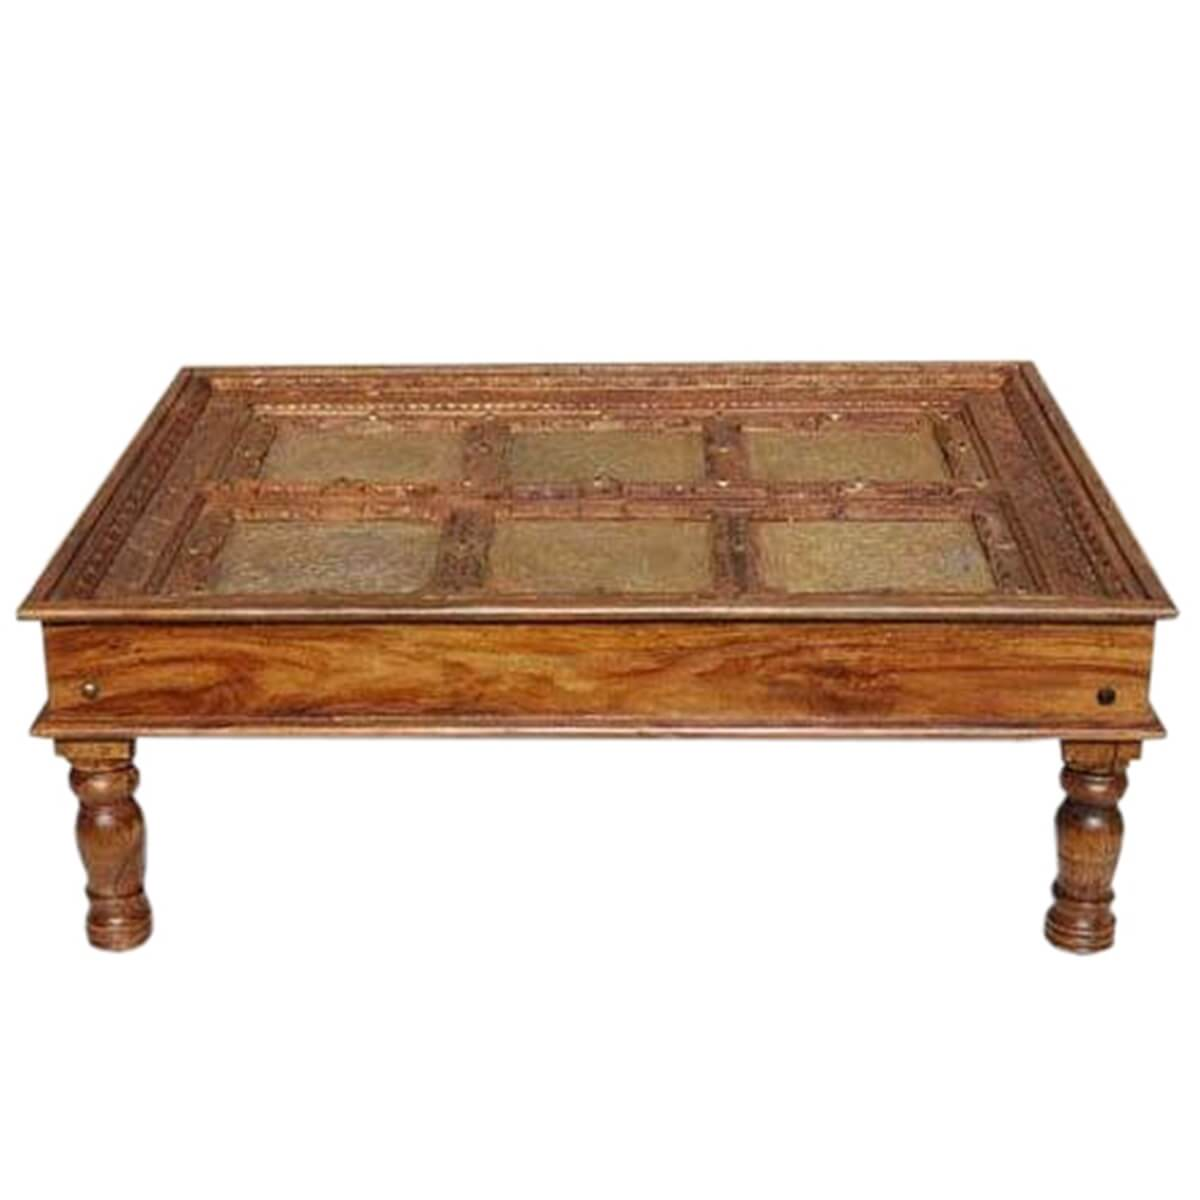 Rare Royal Brass Embossed Mango Wood Coffee Table